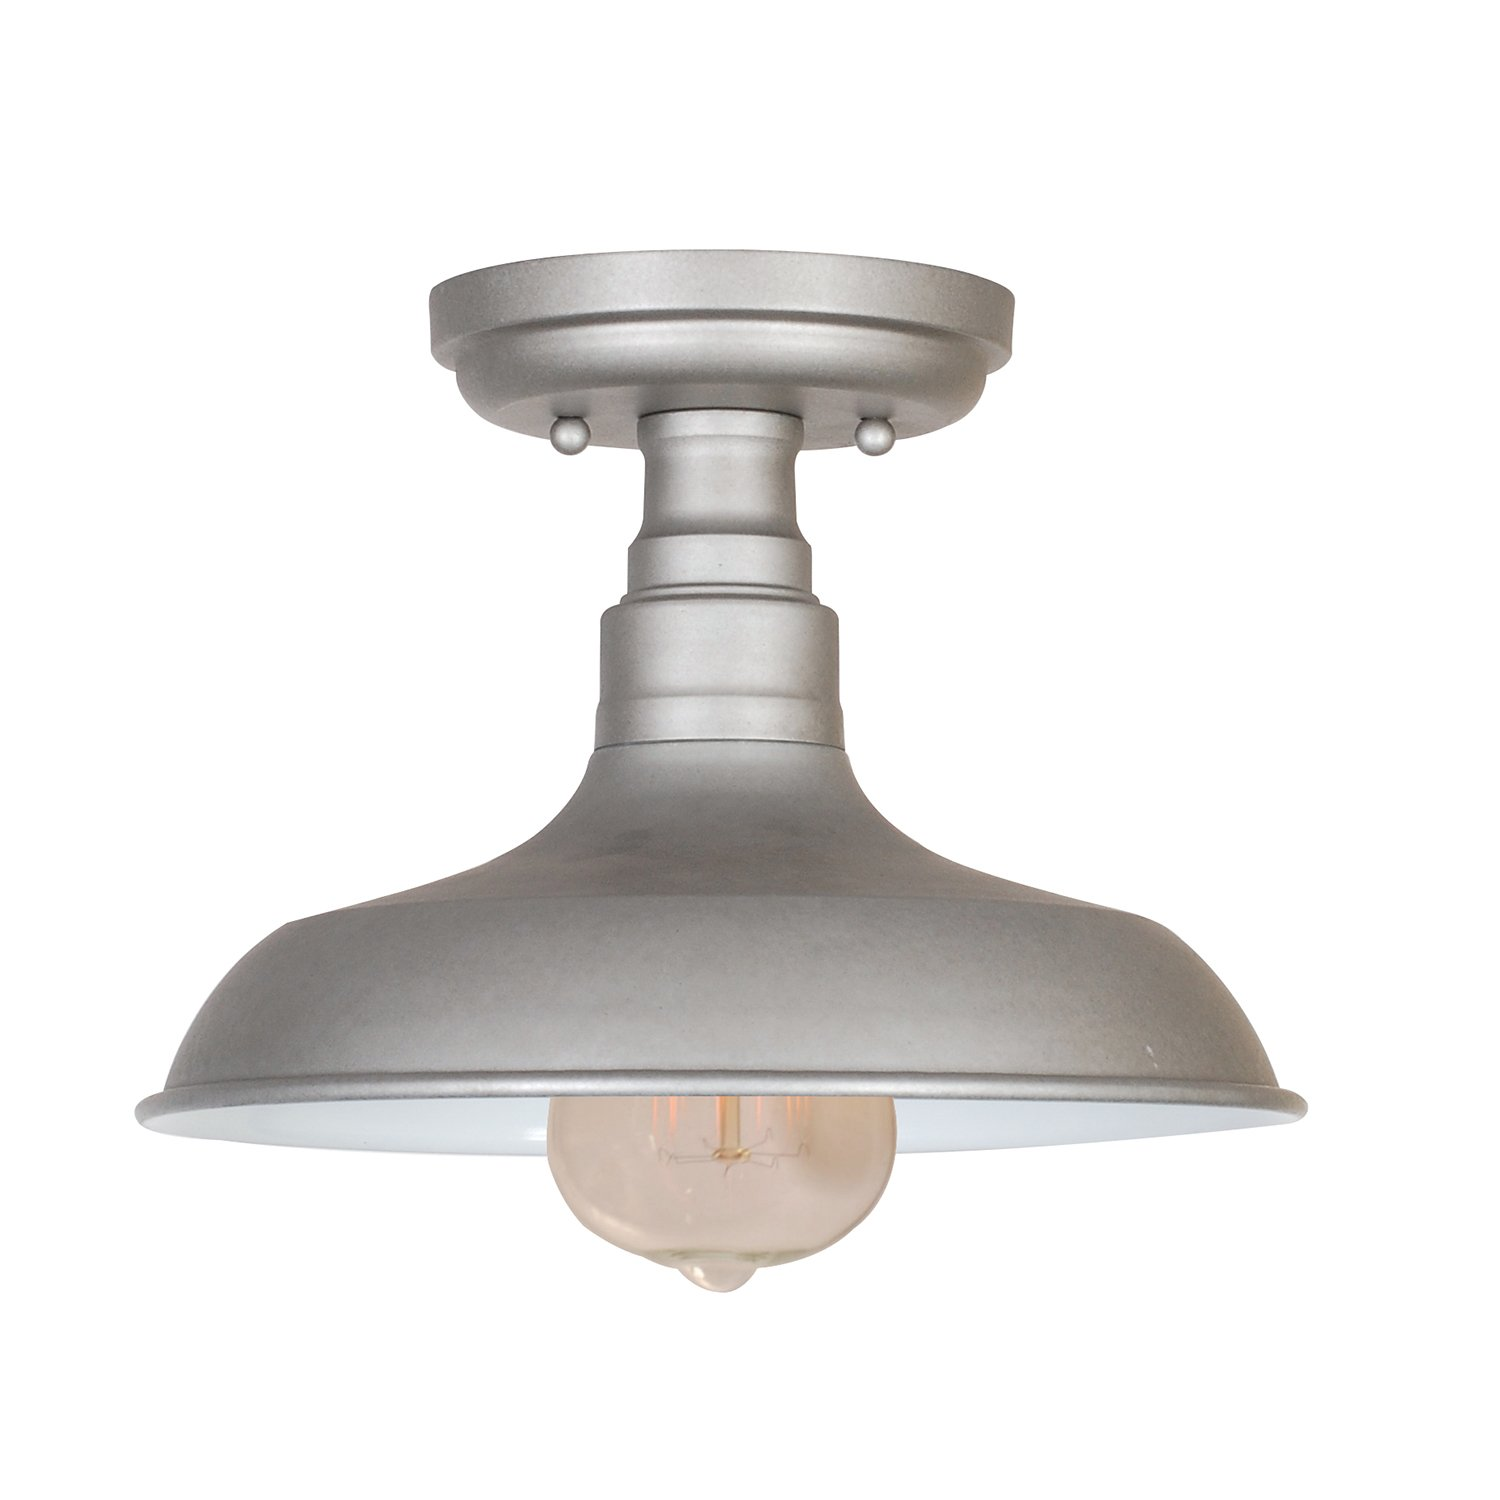 Amazon.com: Design House 519876 Kimball 1 Light Semi Flush Mount ...